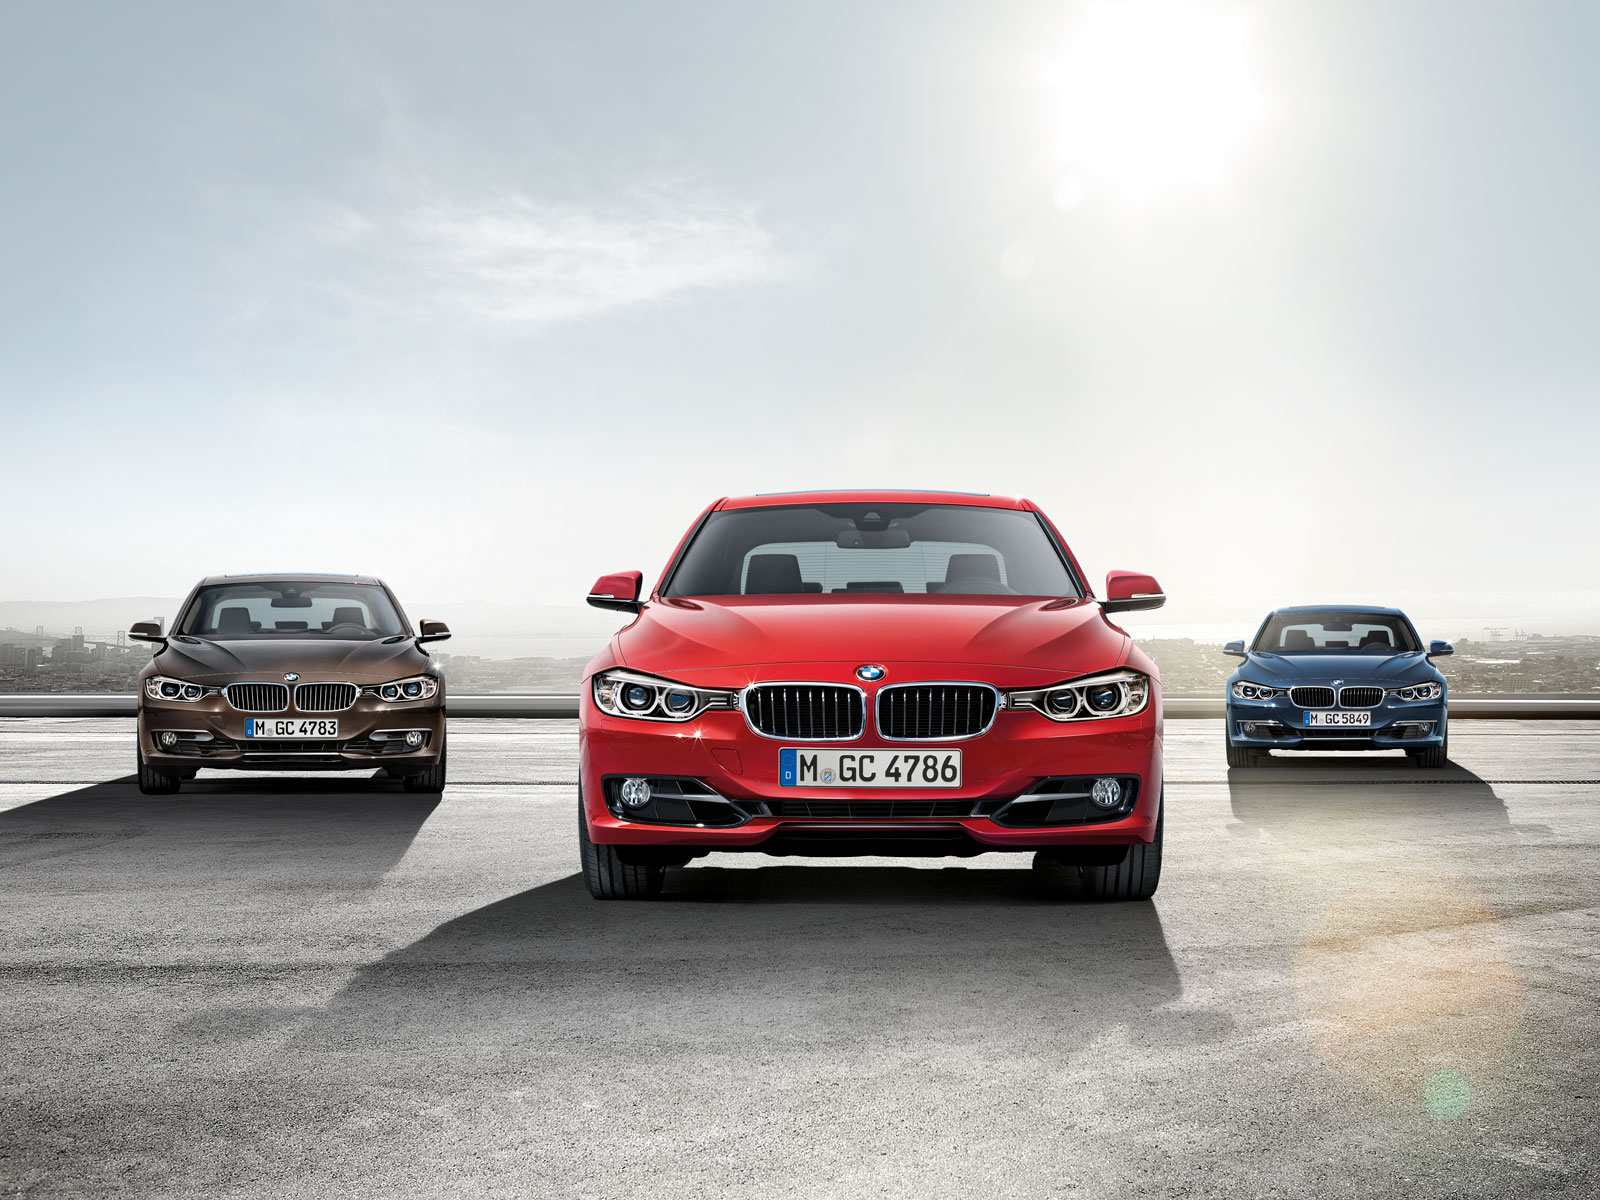 BMW_3series_wallpaper_01_1600